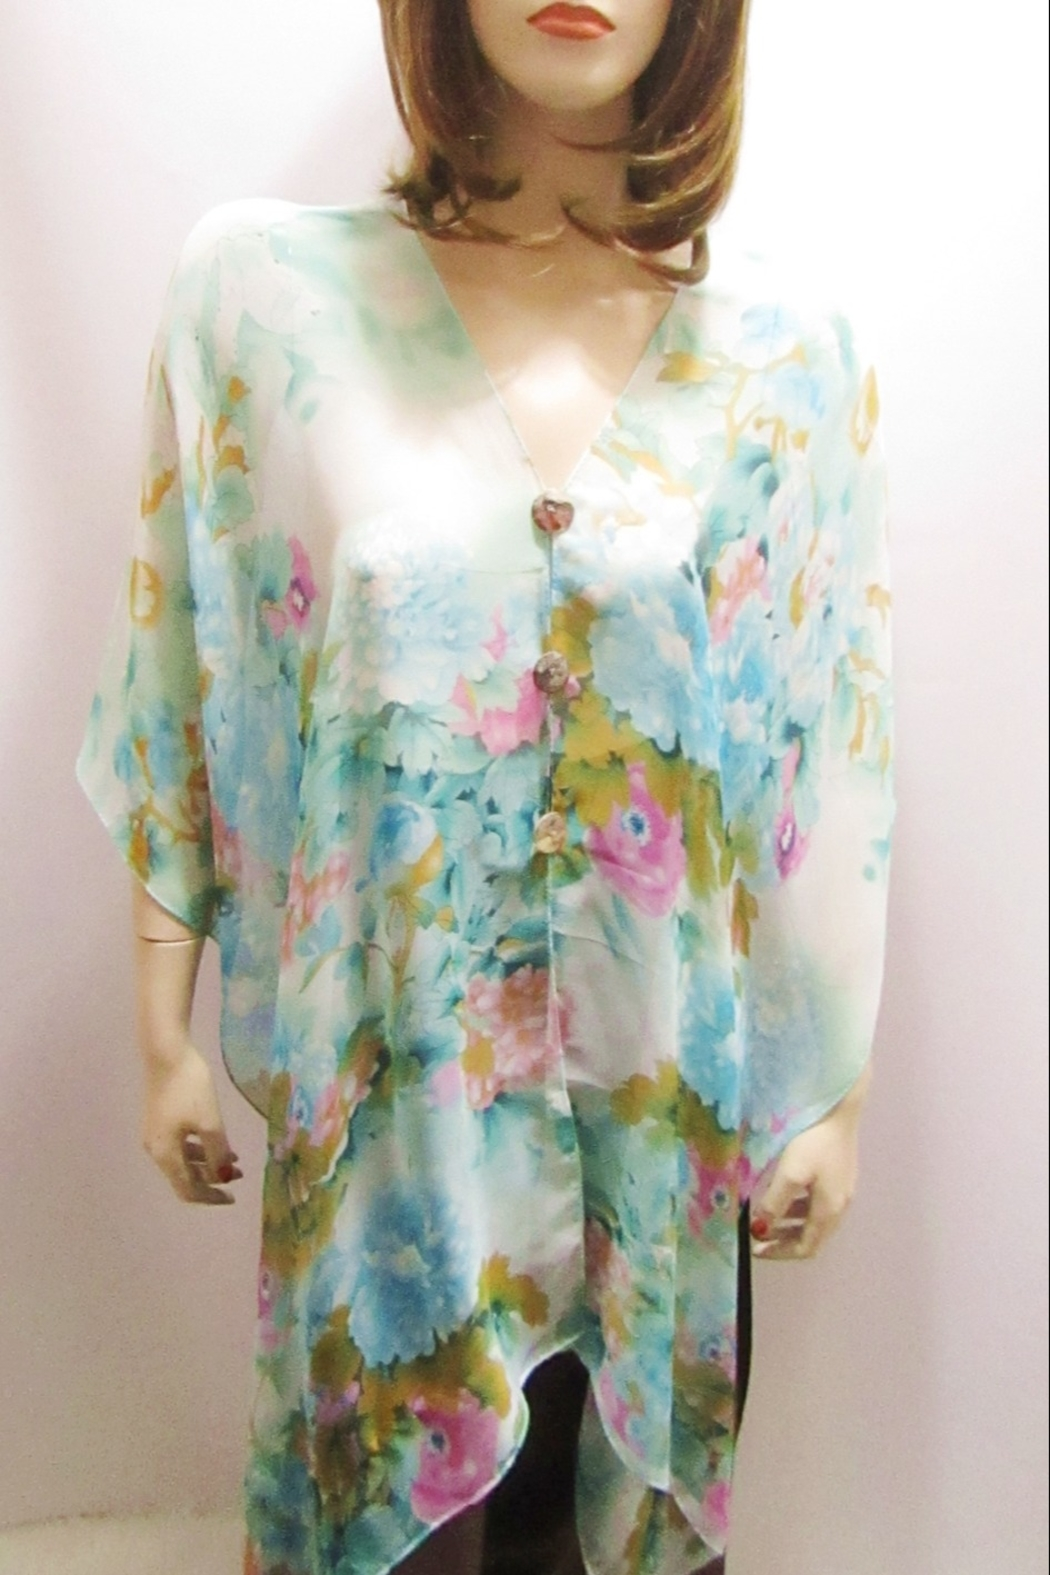 KIMBALS SILKY SHEER PONCHO - Turquoise Floral - Main Image